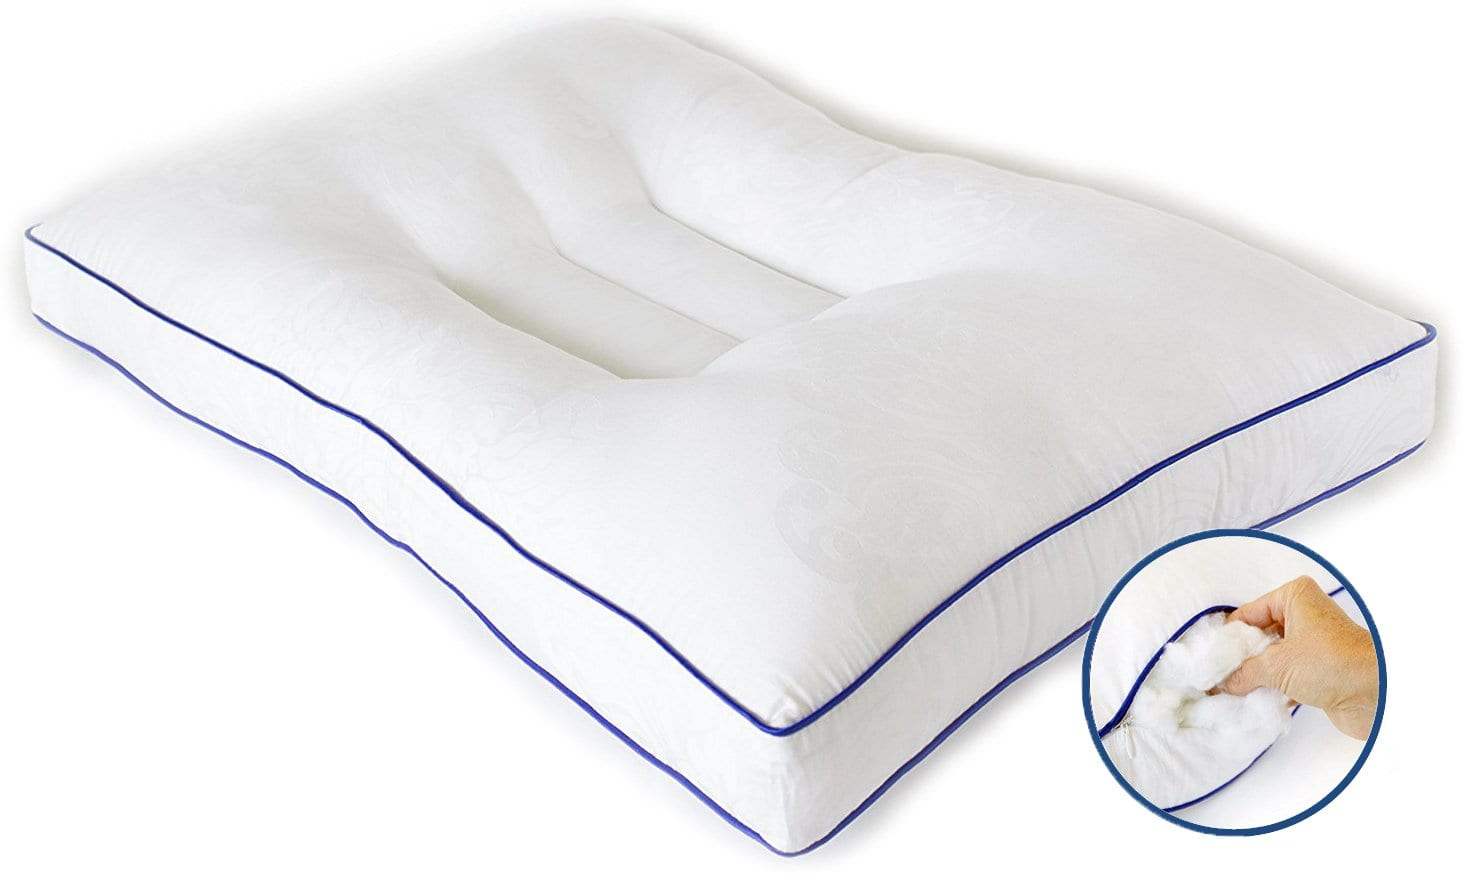 Nature's Guest best pillow for neck pain review by www.dailysleep.org